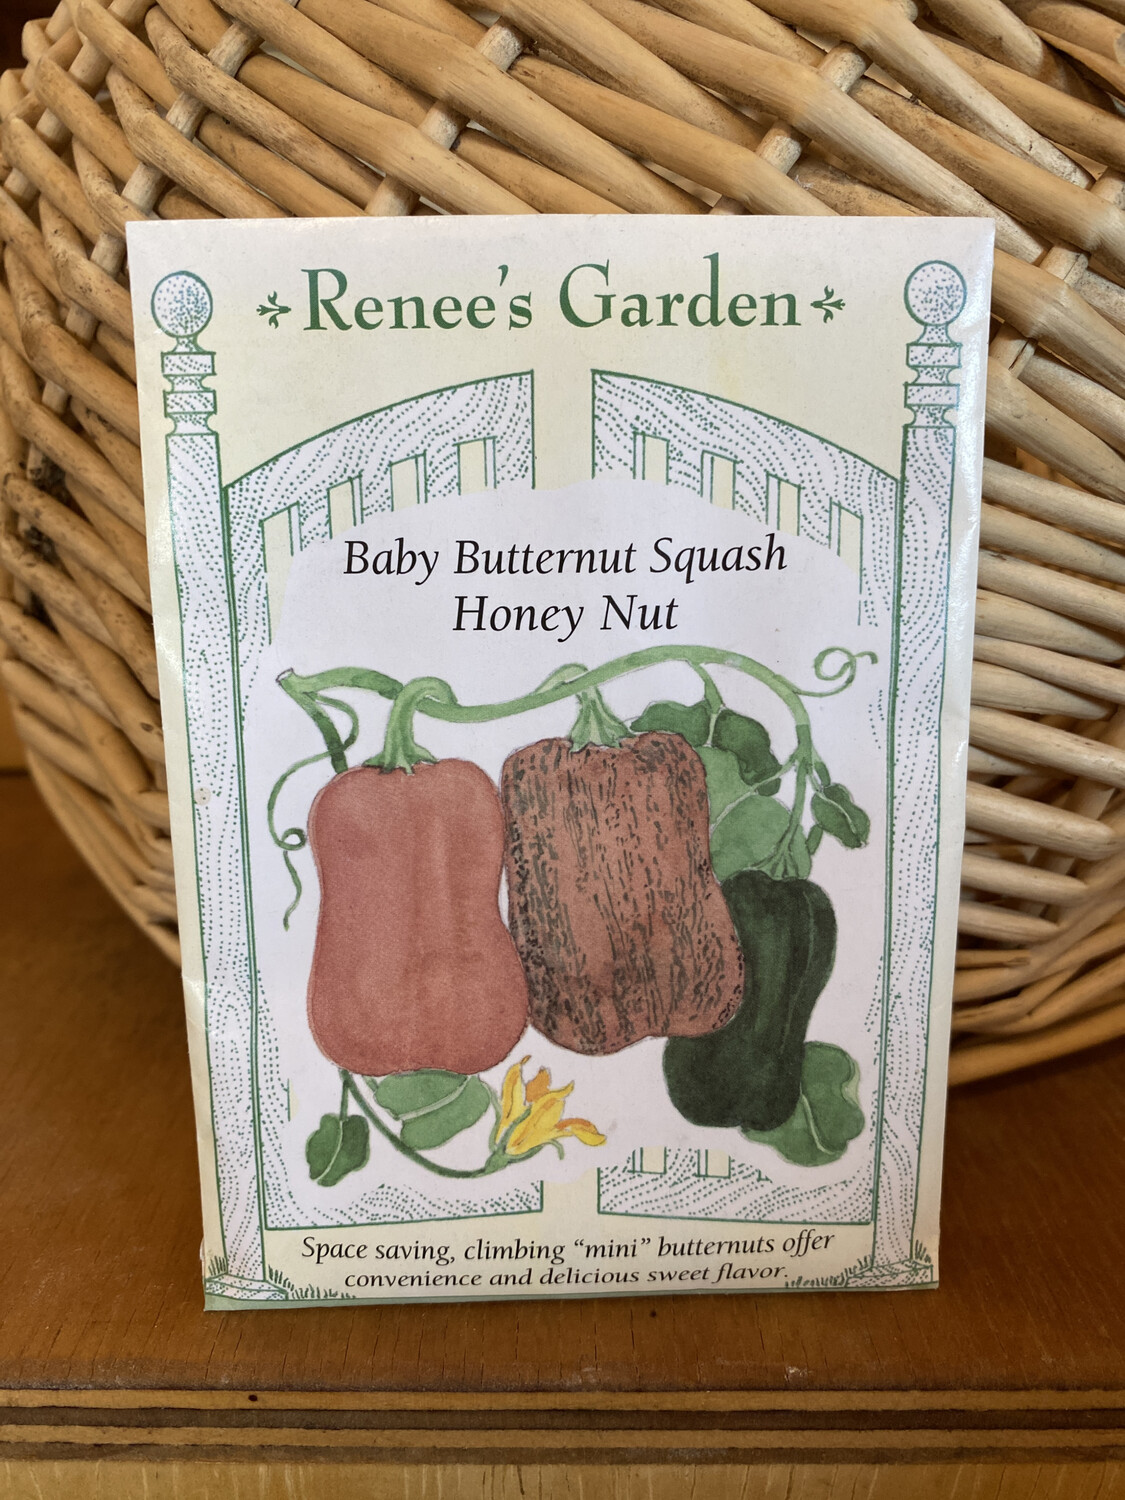 Baby Butternut Squash Honey Nut | Renee's Garden Seed Pack | Past Year's Seeds | Reduced Price